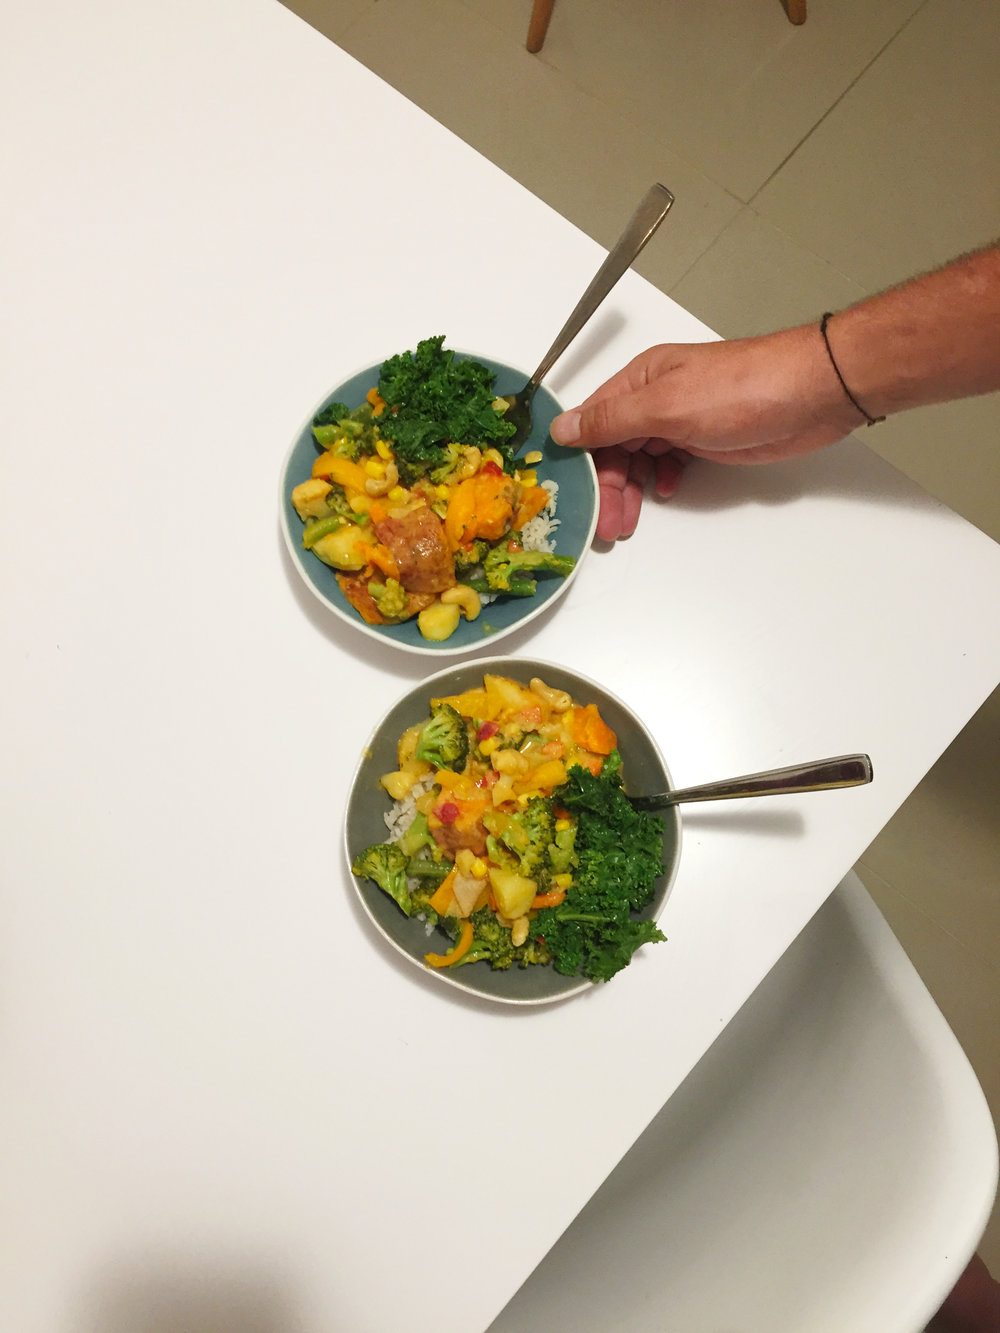 Coconut Curry - Curry is one of our easy go to's. Spices and coconut milk plus veges of course. We pack it with veges and add beans or lentils. Maybe tofu, or some vege meat. Serve it up on rice and it is good to go.